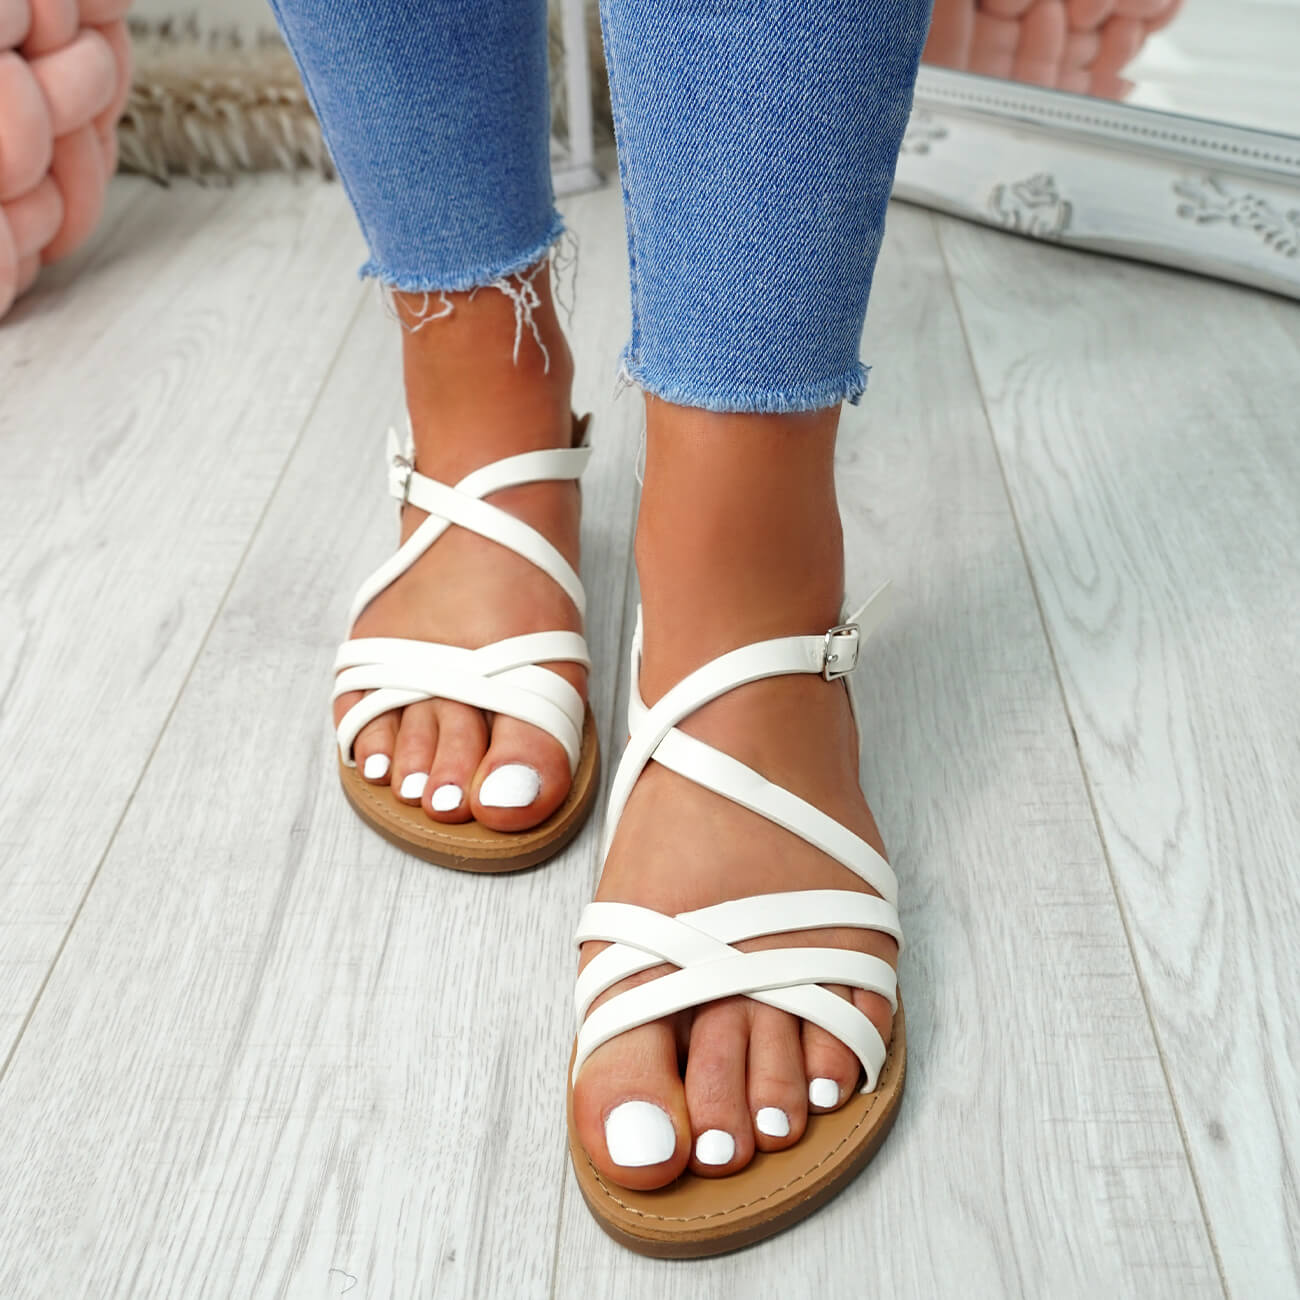 WOMENS-LADIES-ANKLE-STRAP-PEEP-TOE-BUCKLE-FLAT-SANDALS-SUMMER-CASUAL-SHOES thumbnail 32